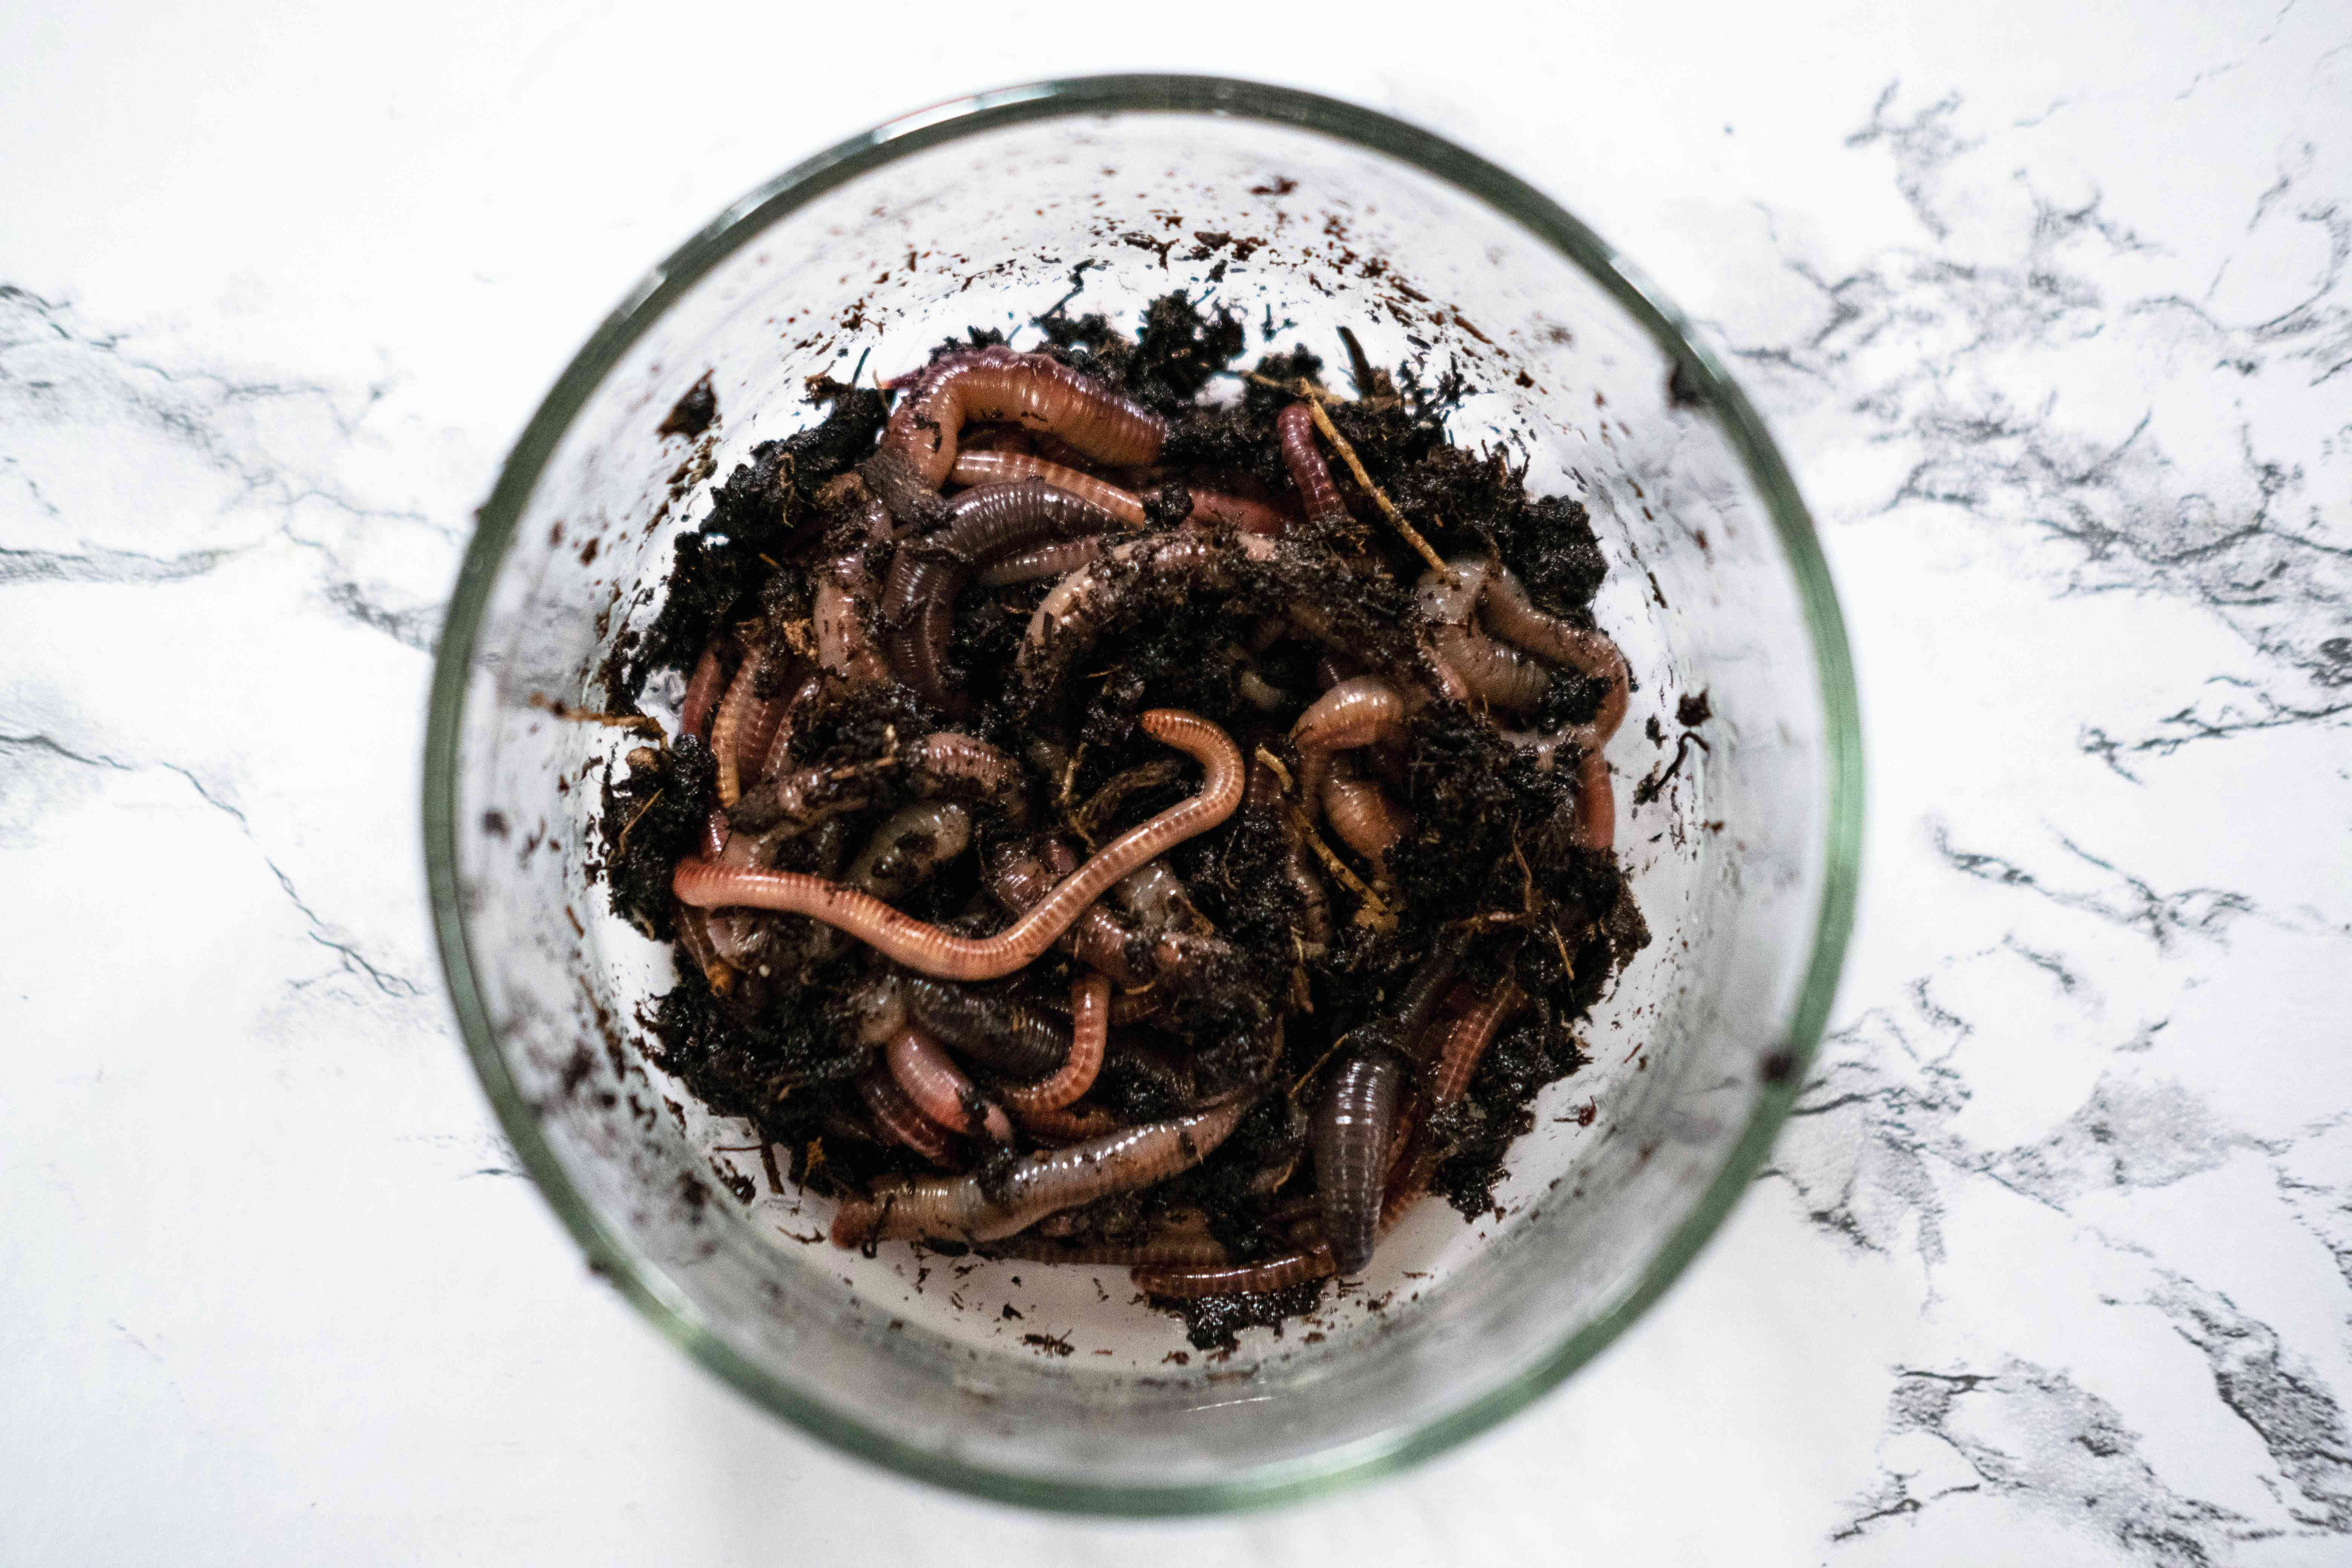 overhead view of red wiggler worms in dirt in a glass bowl